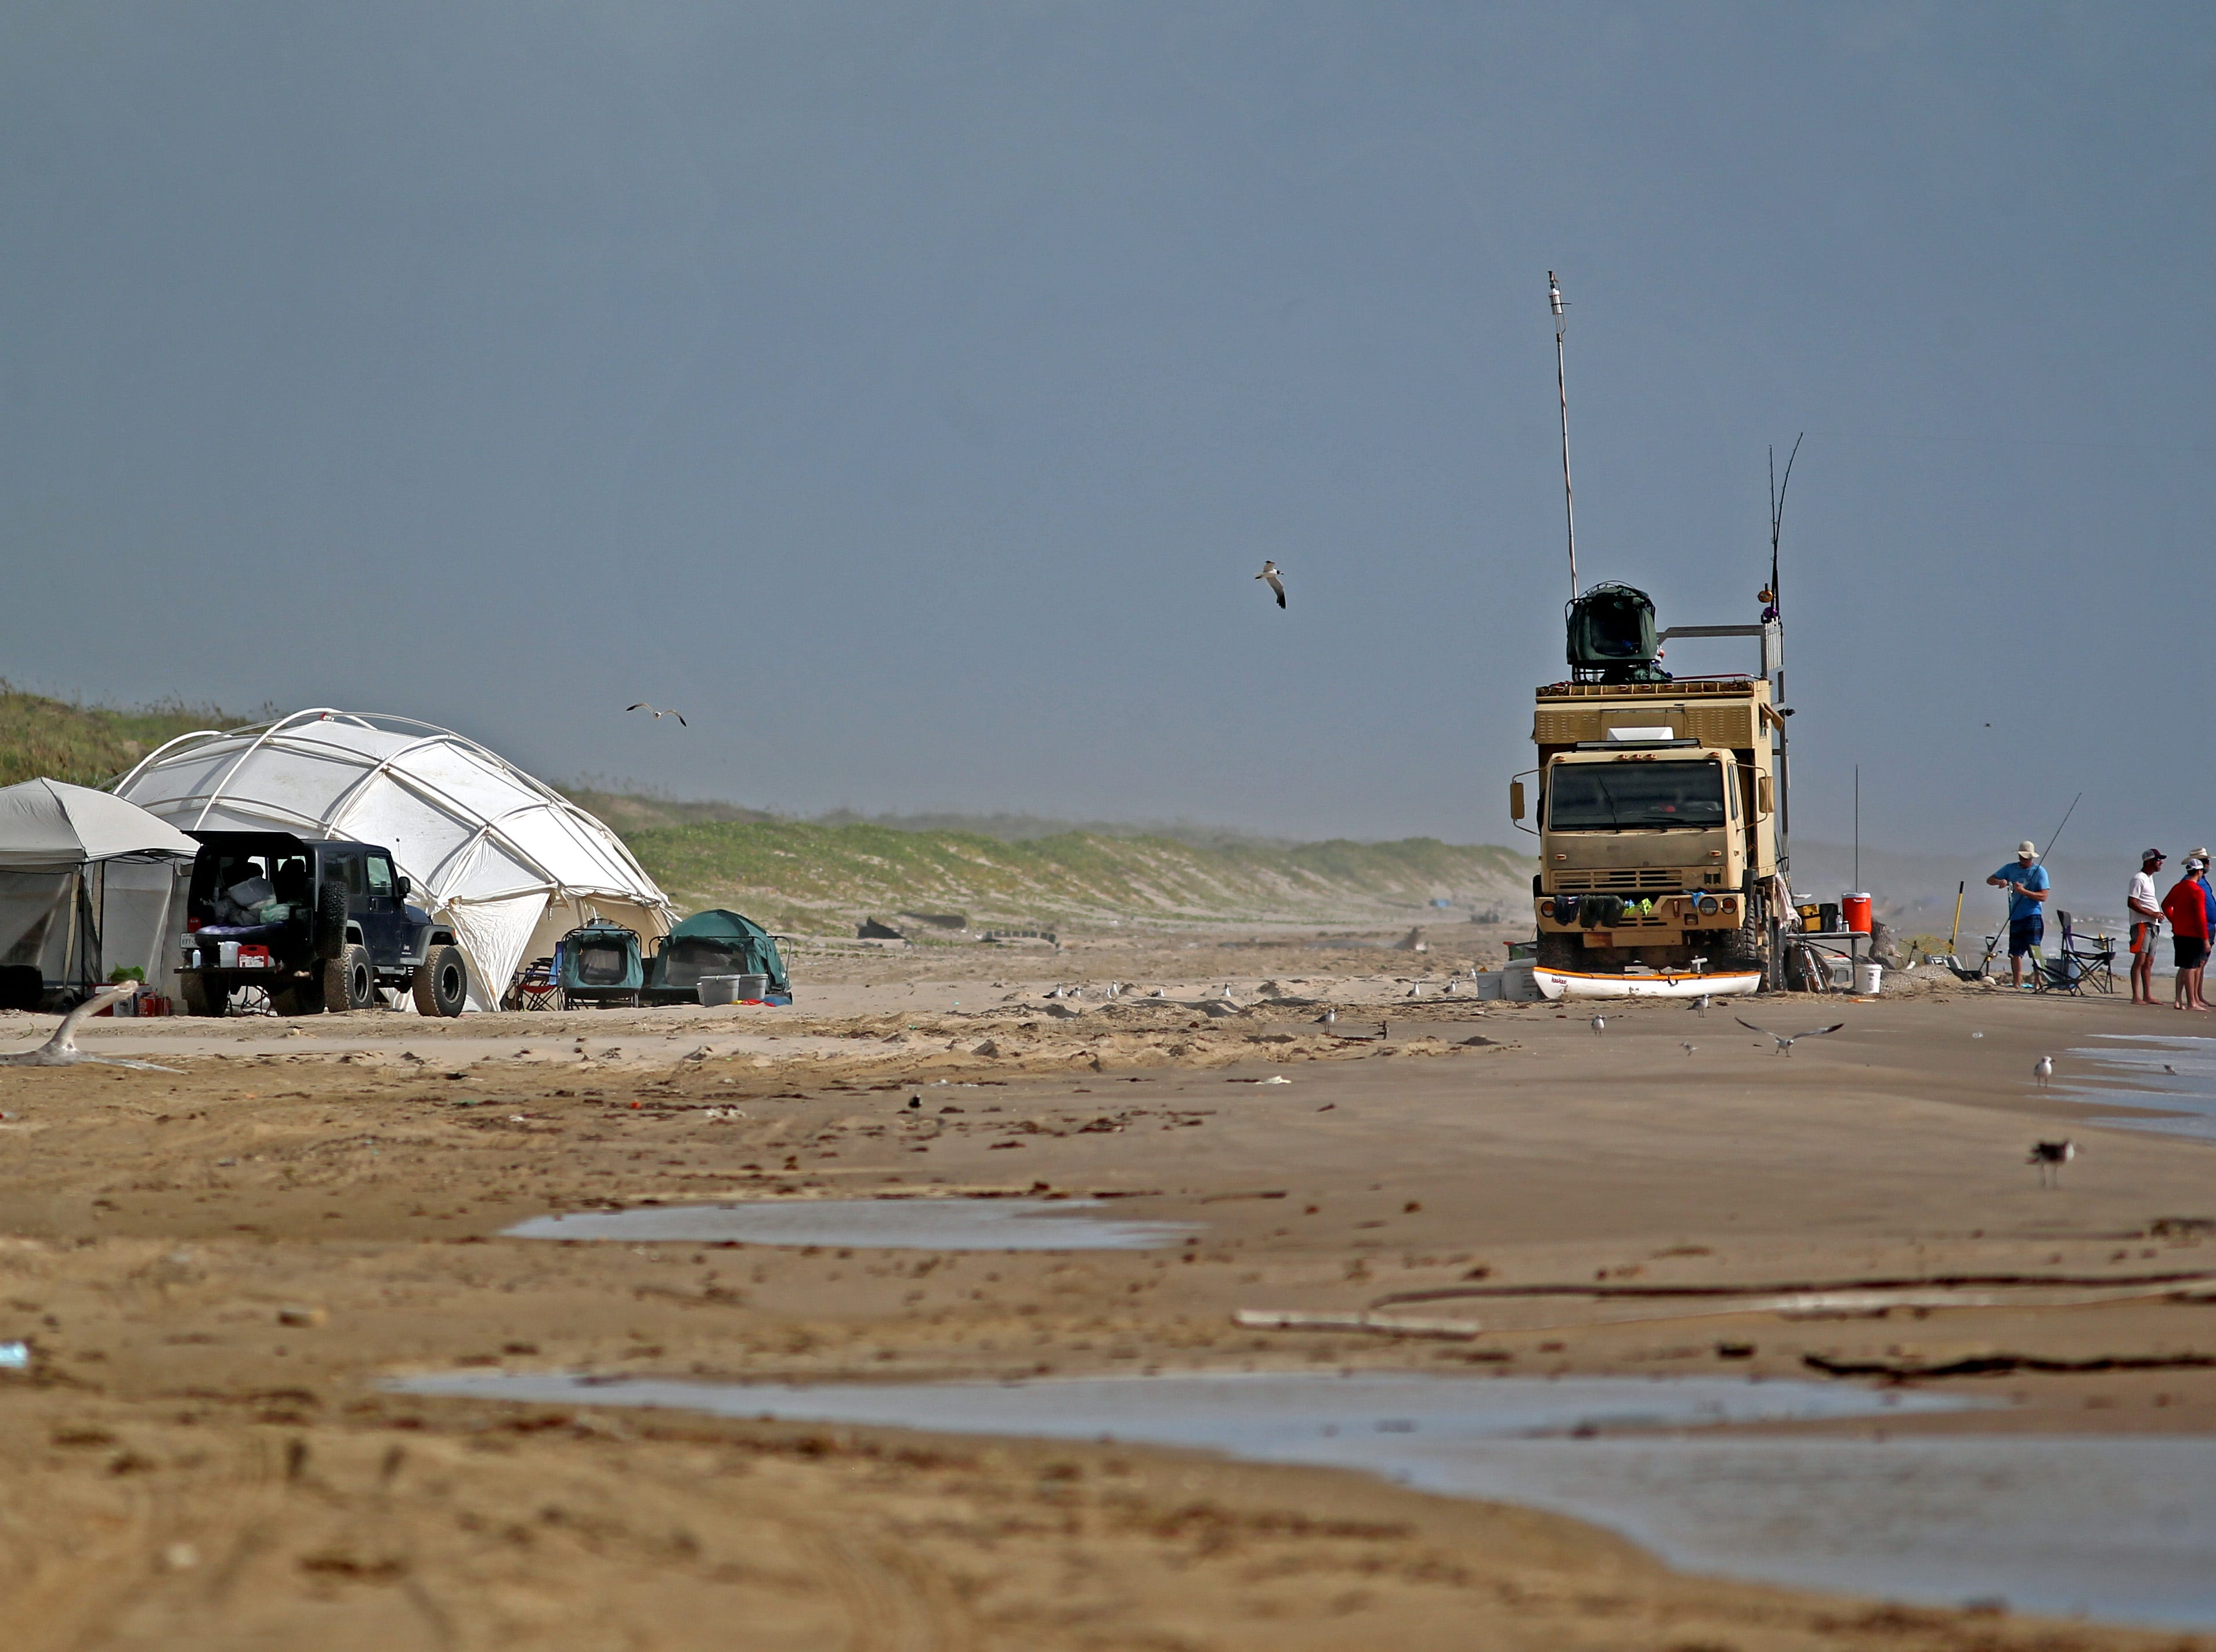 Camping is allowed along Padre Island National Seashore without a special camping permit. A $20 7-day pass is required.